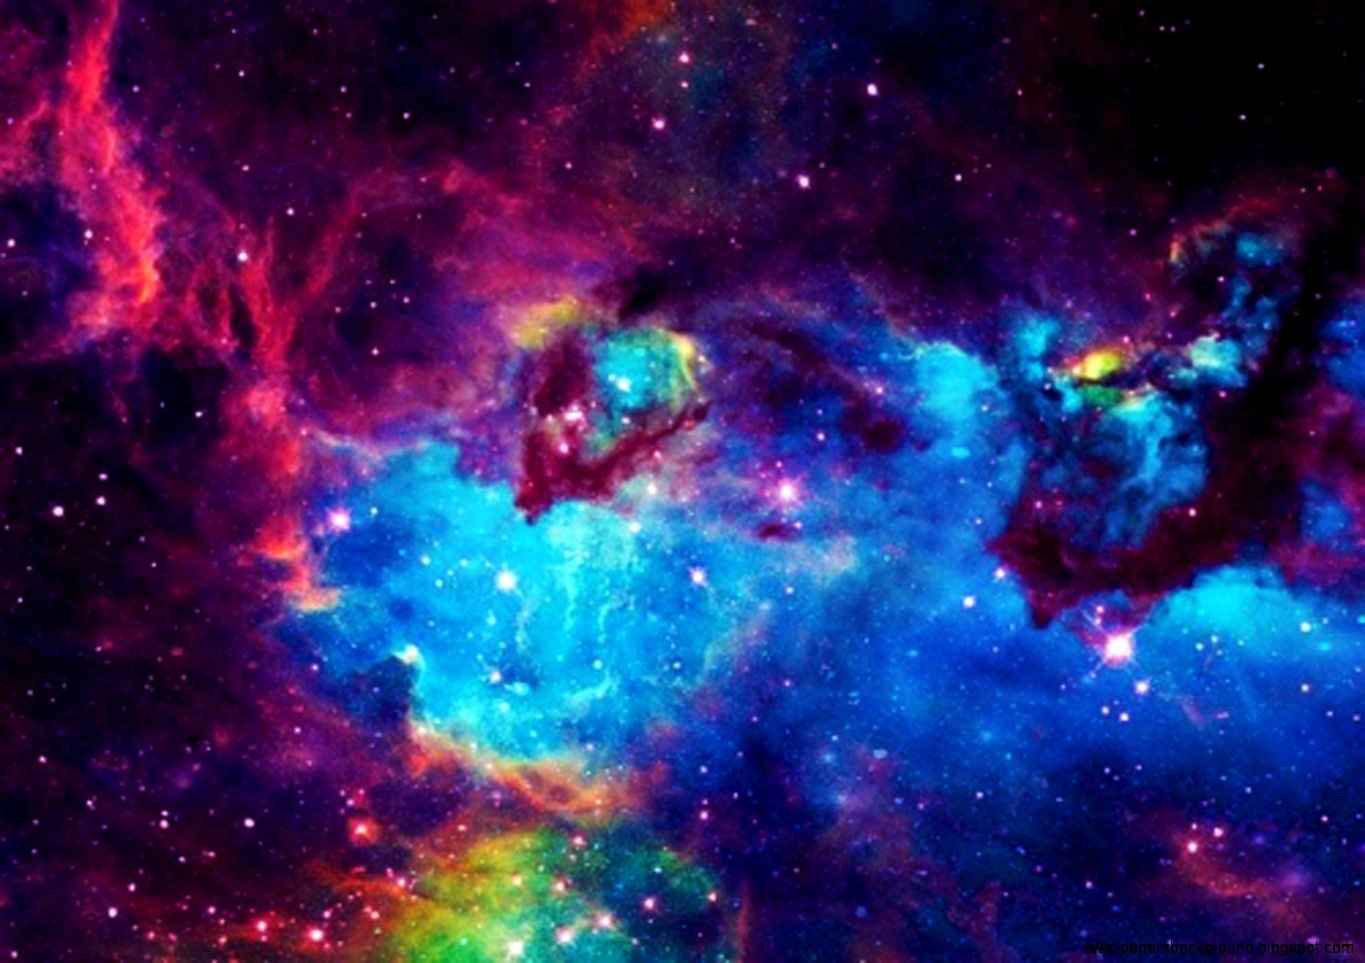 Wallpaper Tumblr Backgrounds Galaxy Galaxy Hipster Large